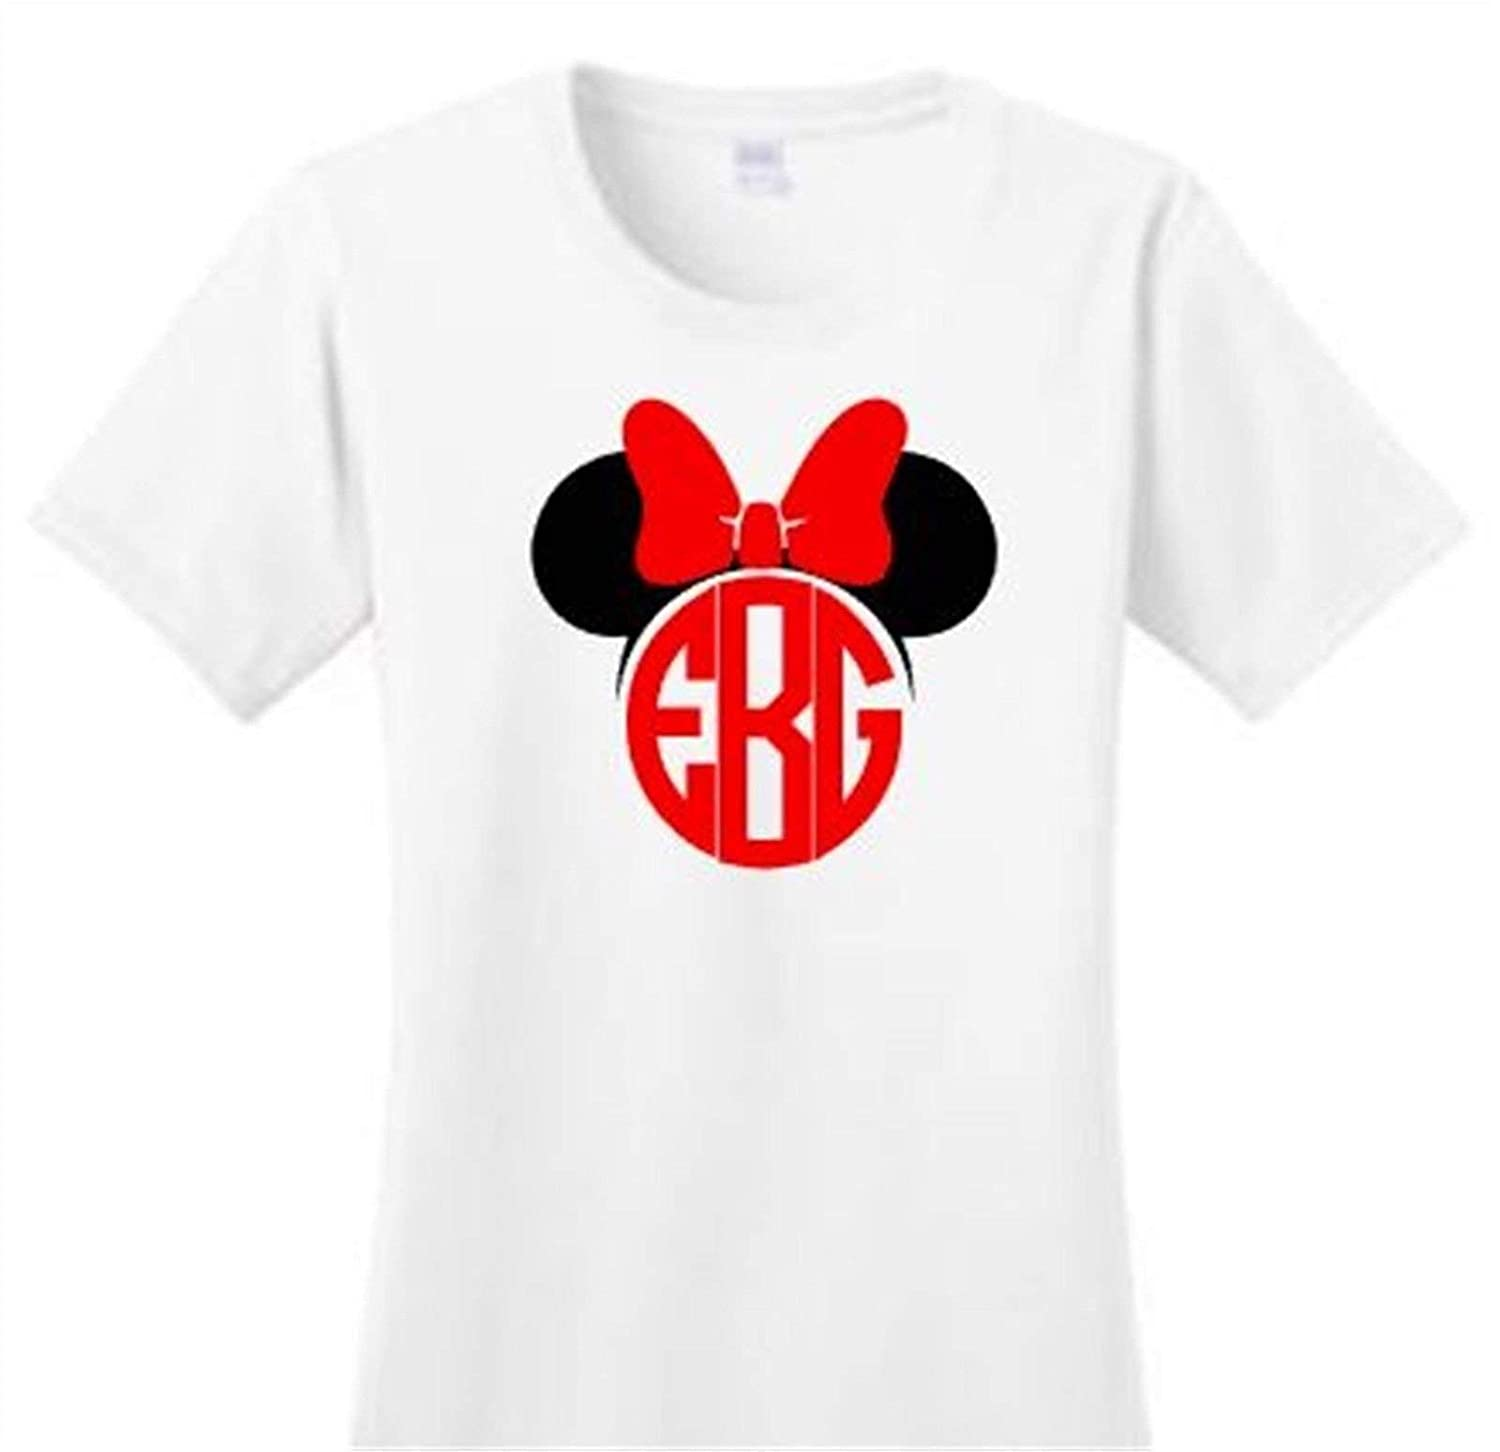 Personalized Monogrammed Family Disney Mickey or Minnie Mouse with Bow T-Shirt - Toddler, Youth, and Adult Sizes